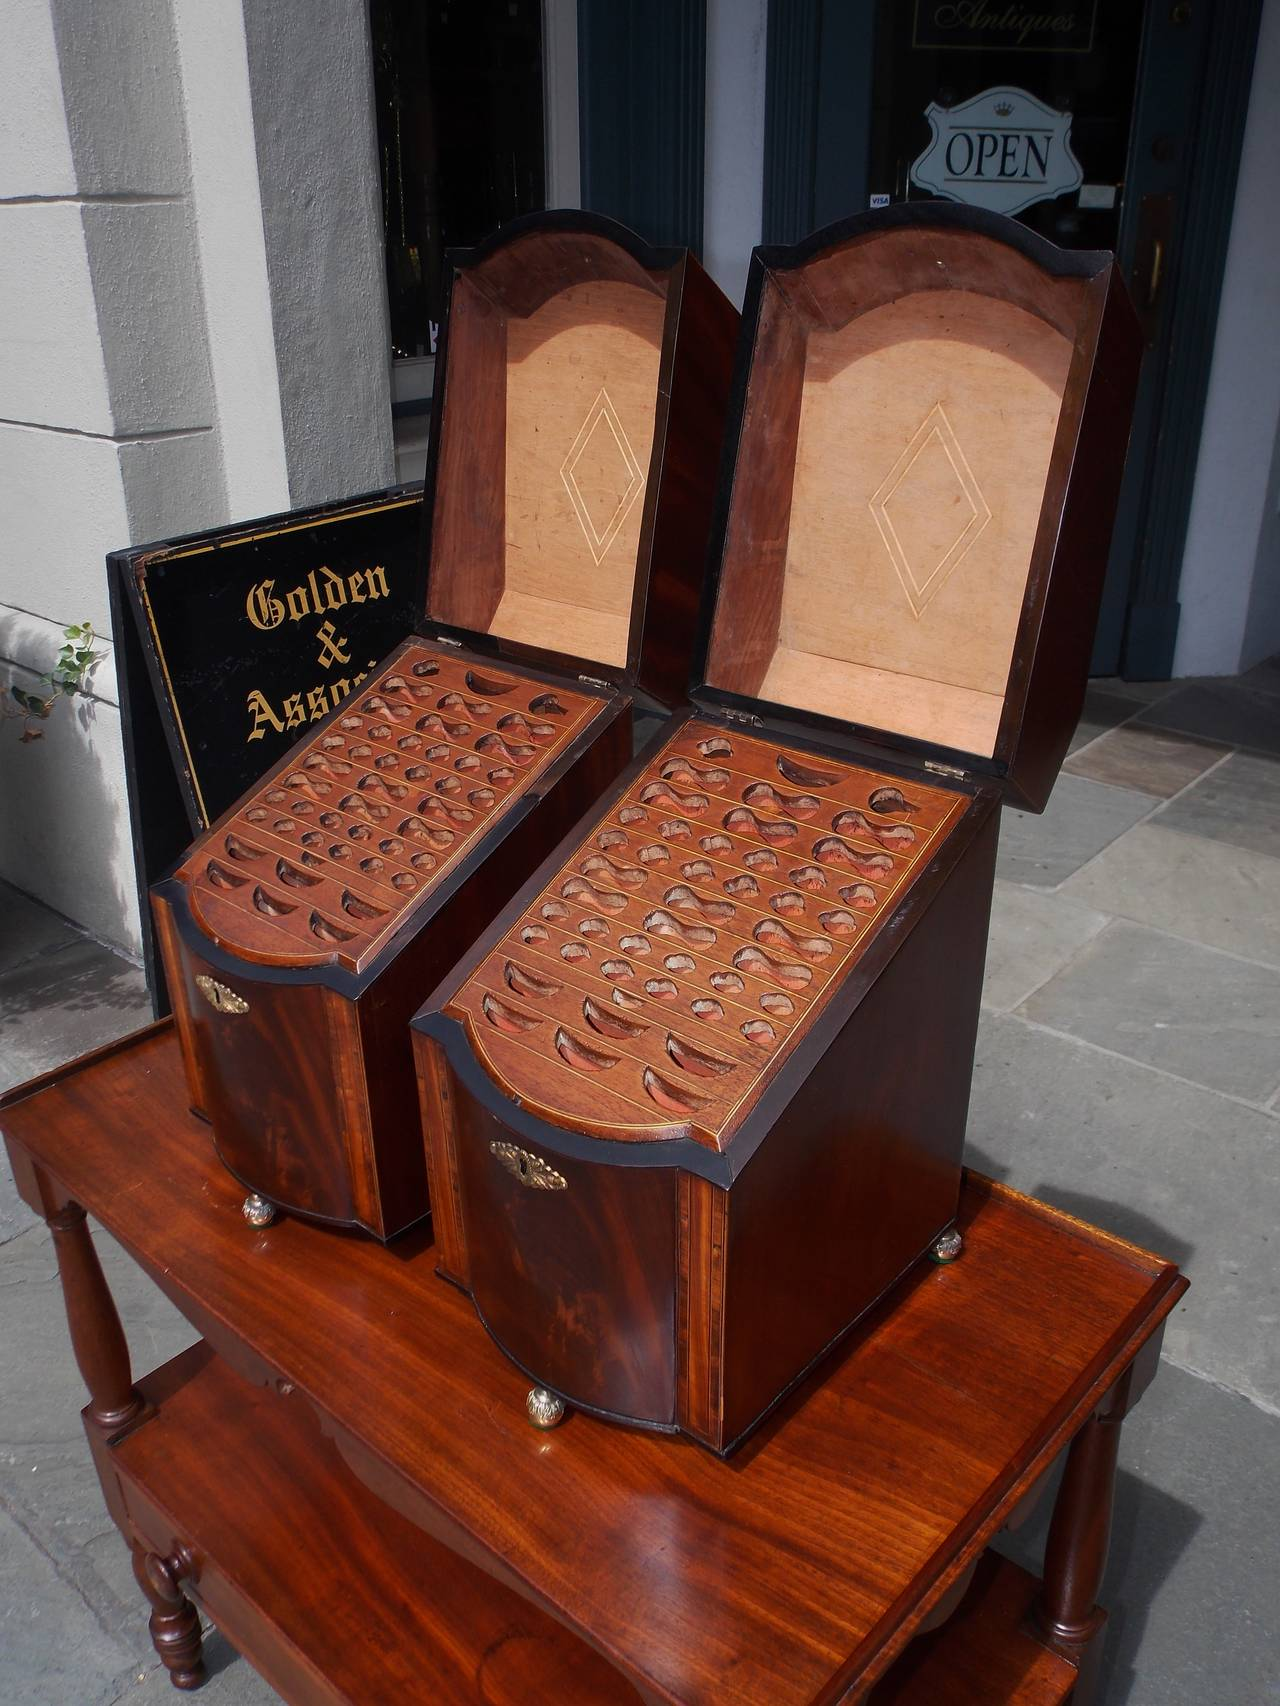 Pair of American Mahogany Inlaid Cutlery Boxes Charleston, SC, Circa 1790 For Sale 1